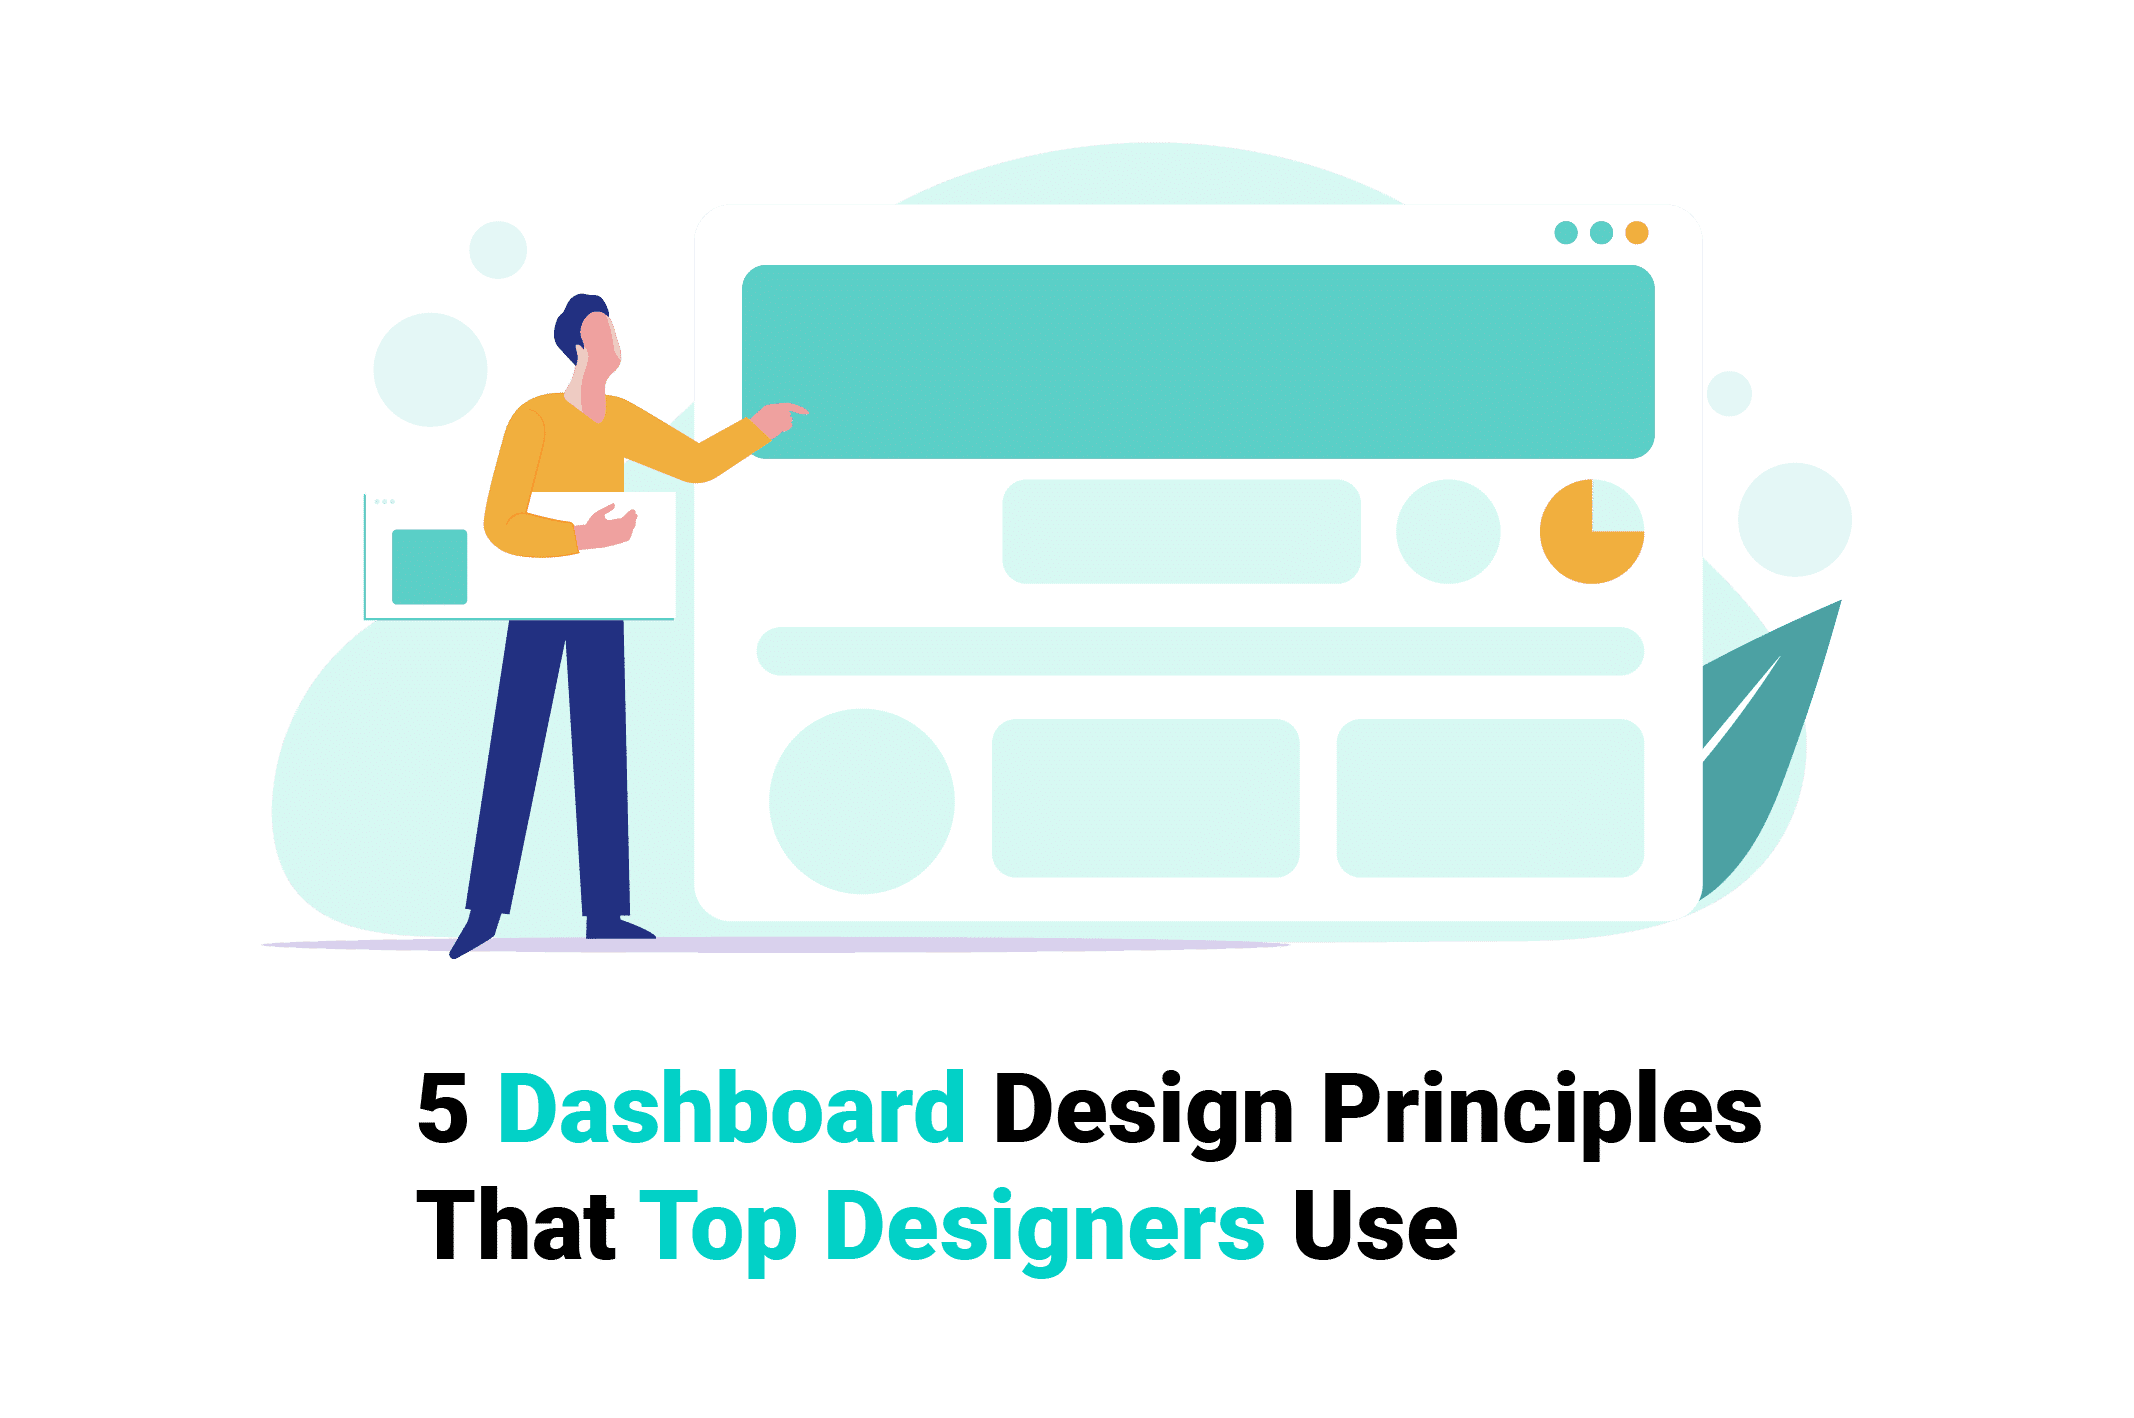 Dashboard Design Principles brought to you by the Ranked # Product Strategy and UX Design Firm, a team of expert Designers, WANDR